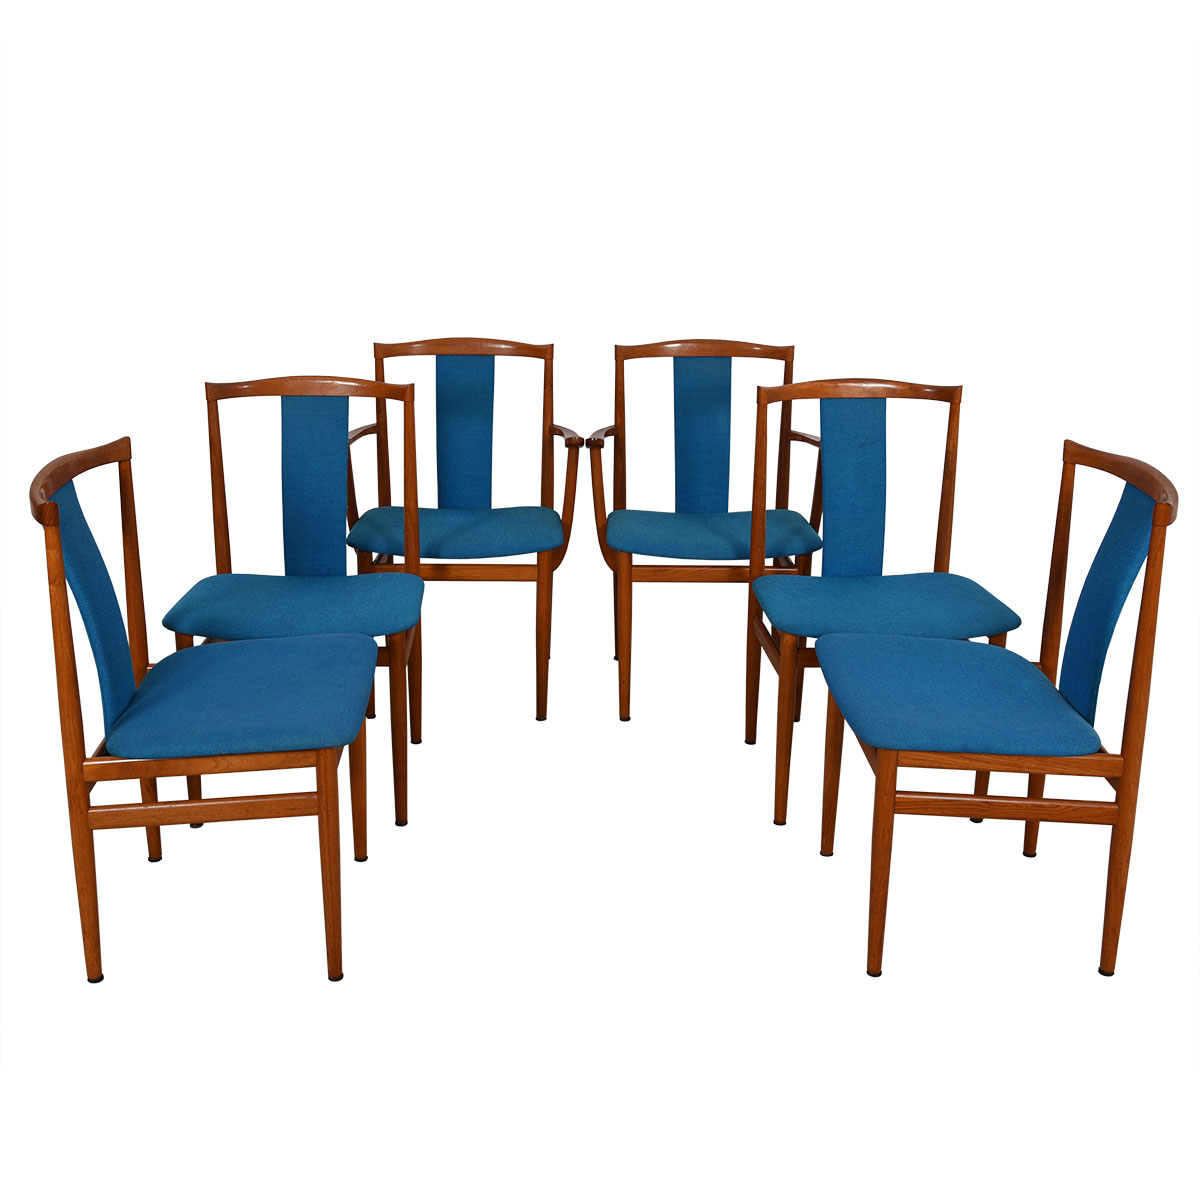 Set of 6 Danish Modern Blue Upholstered Teak Sculpted-back Dining Chairs